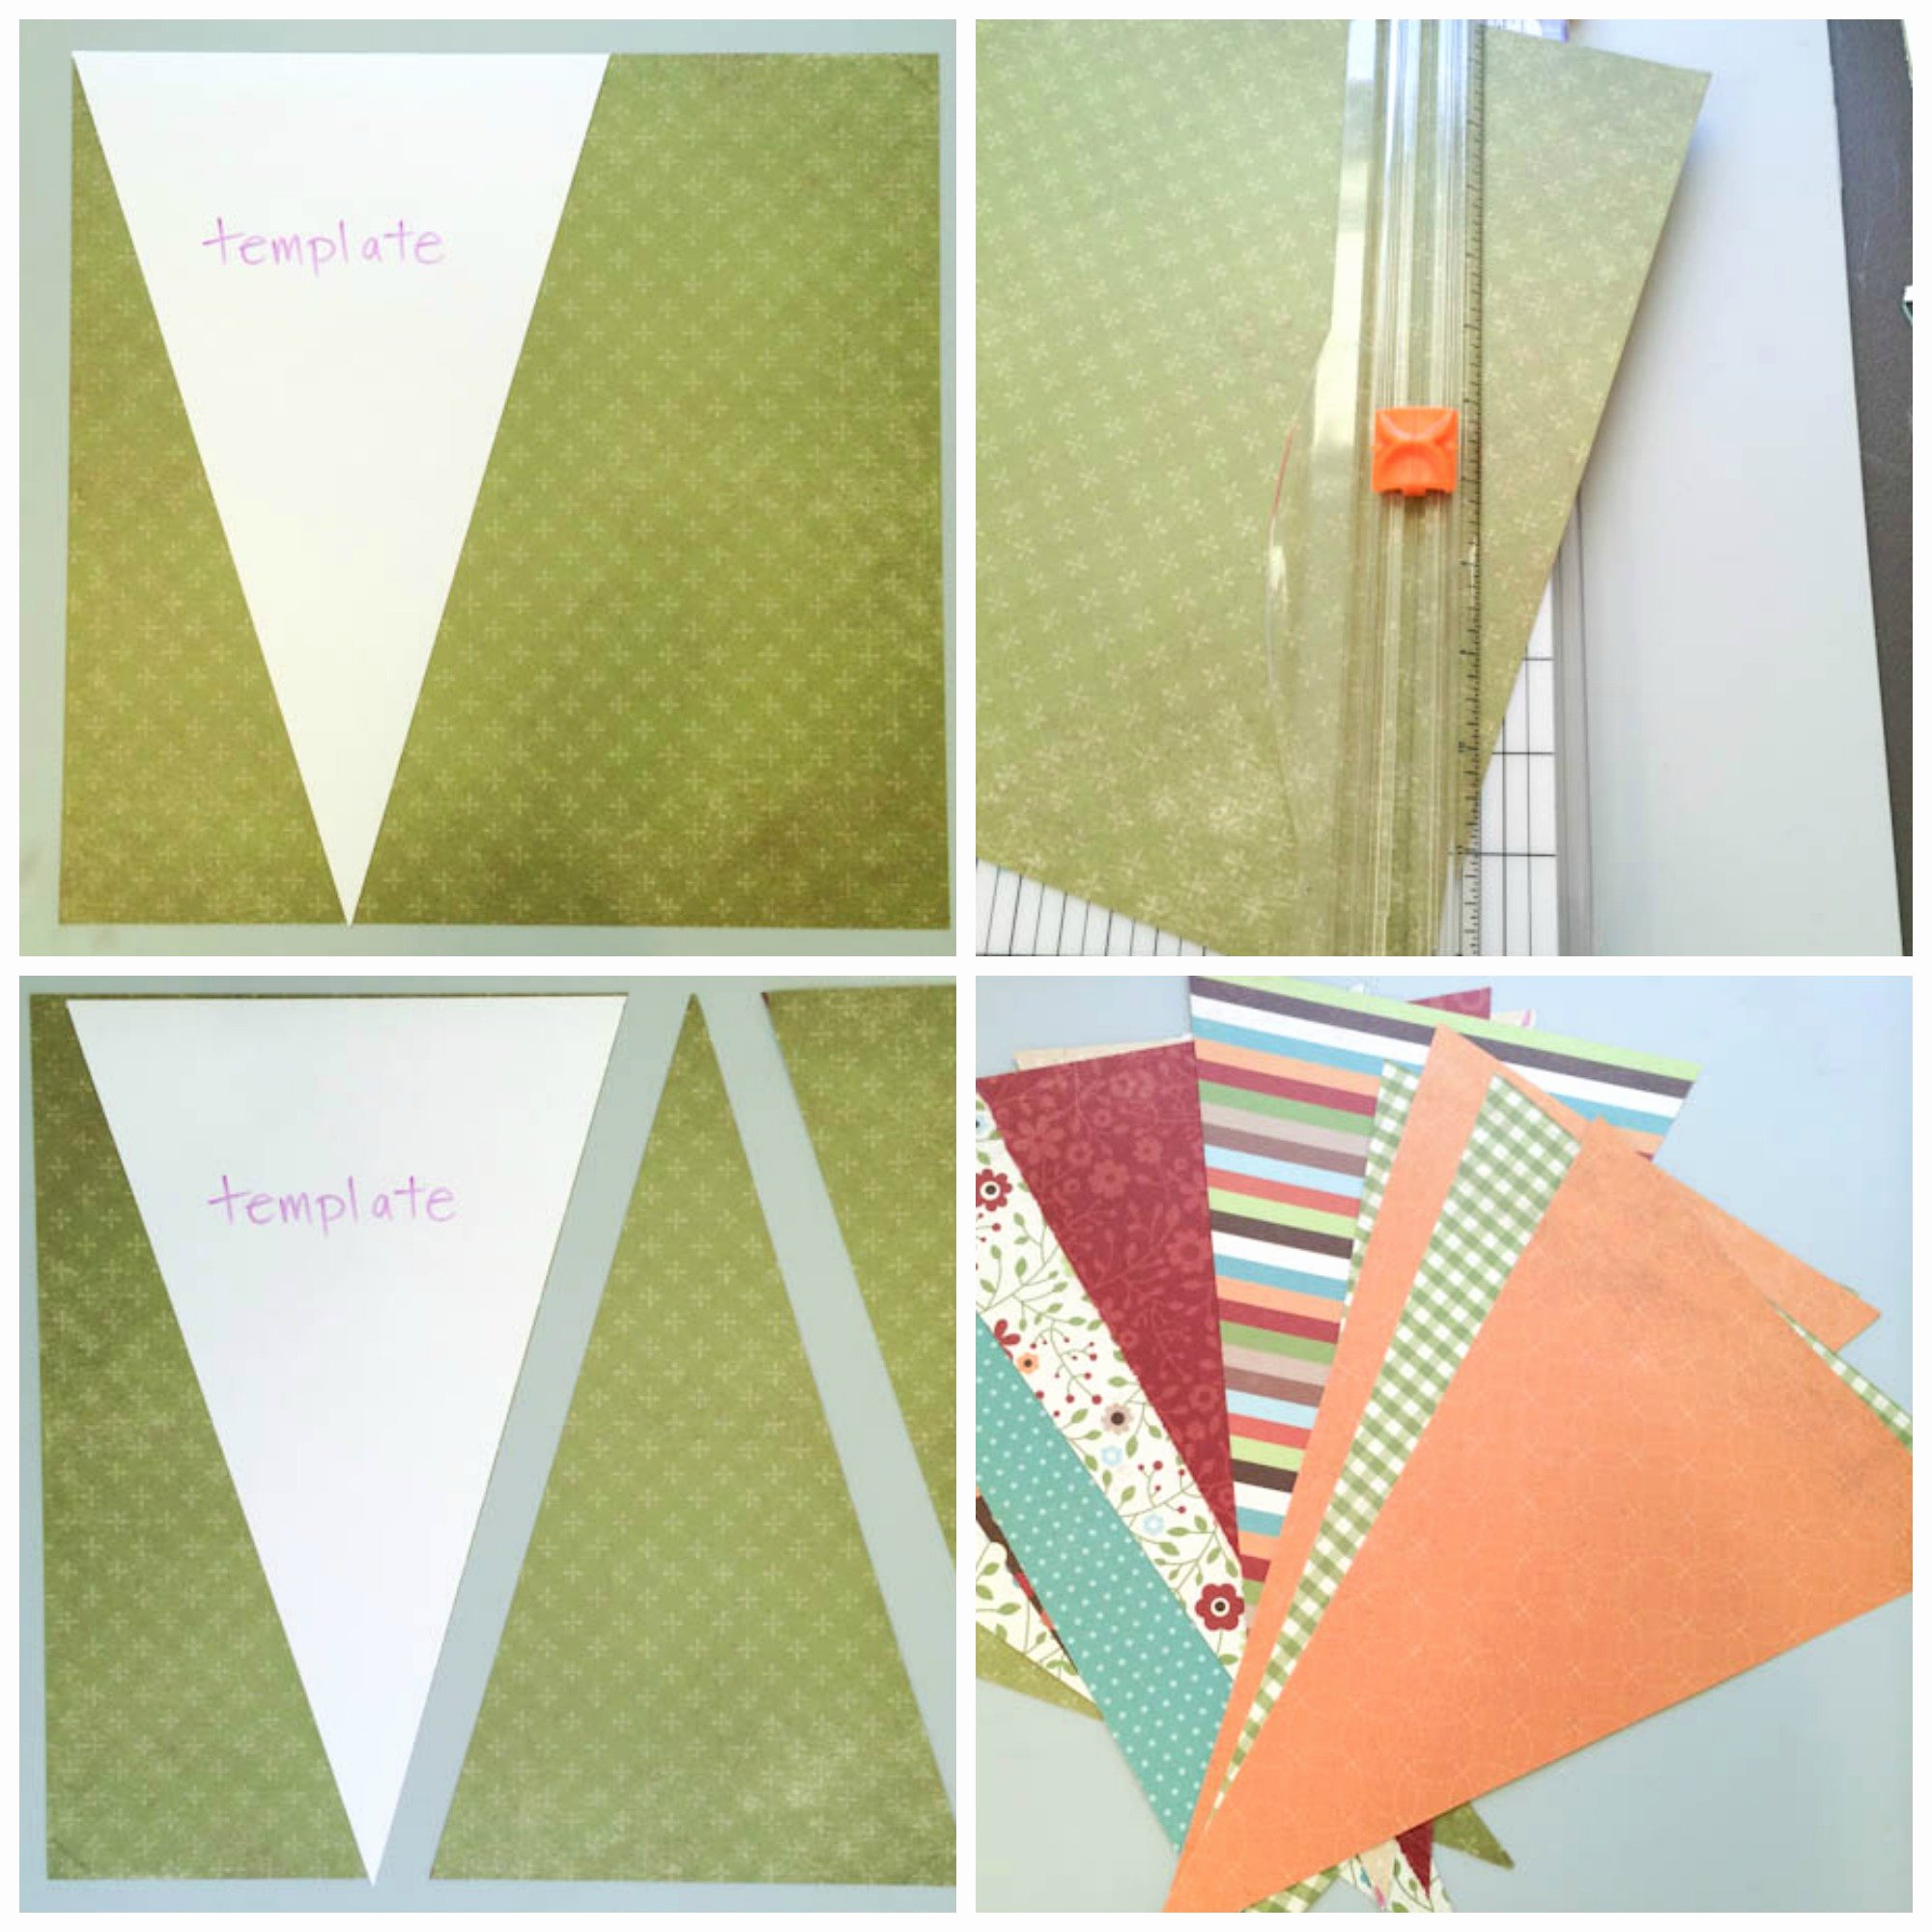 Diy Pennant Banner Template Elegant Diy Decor Free Penant Banner Tutorial On Craftsy